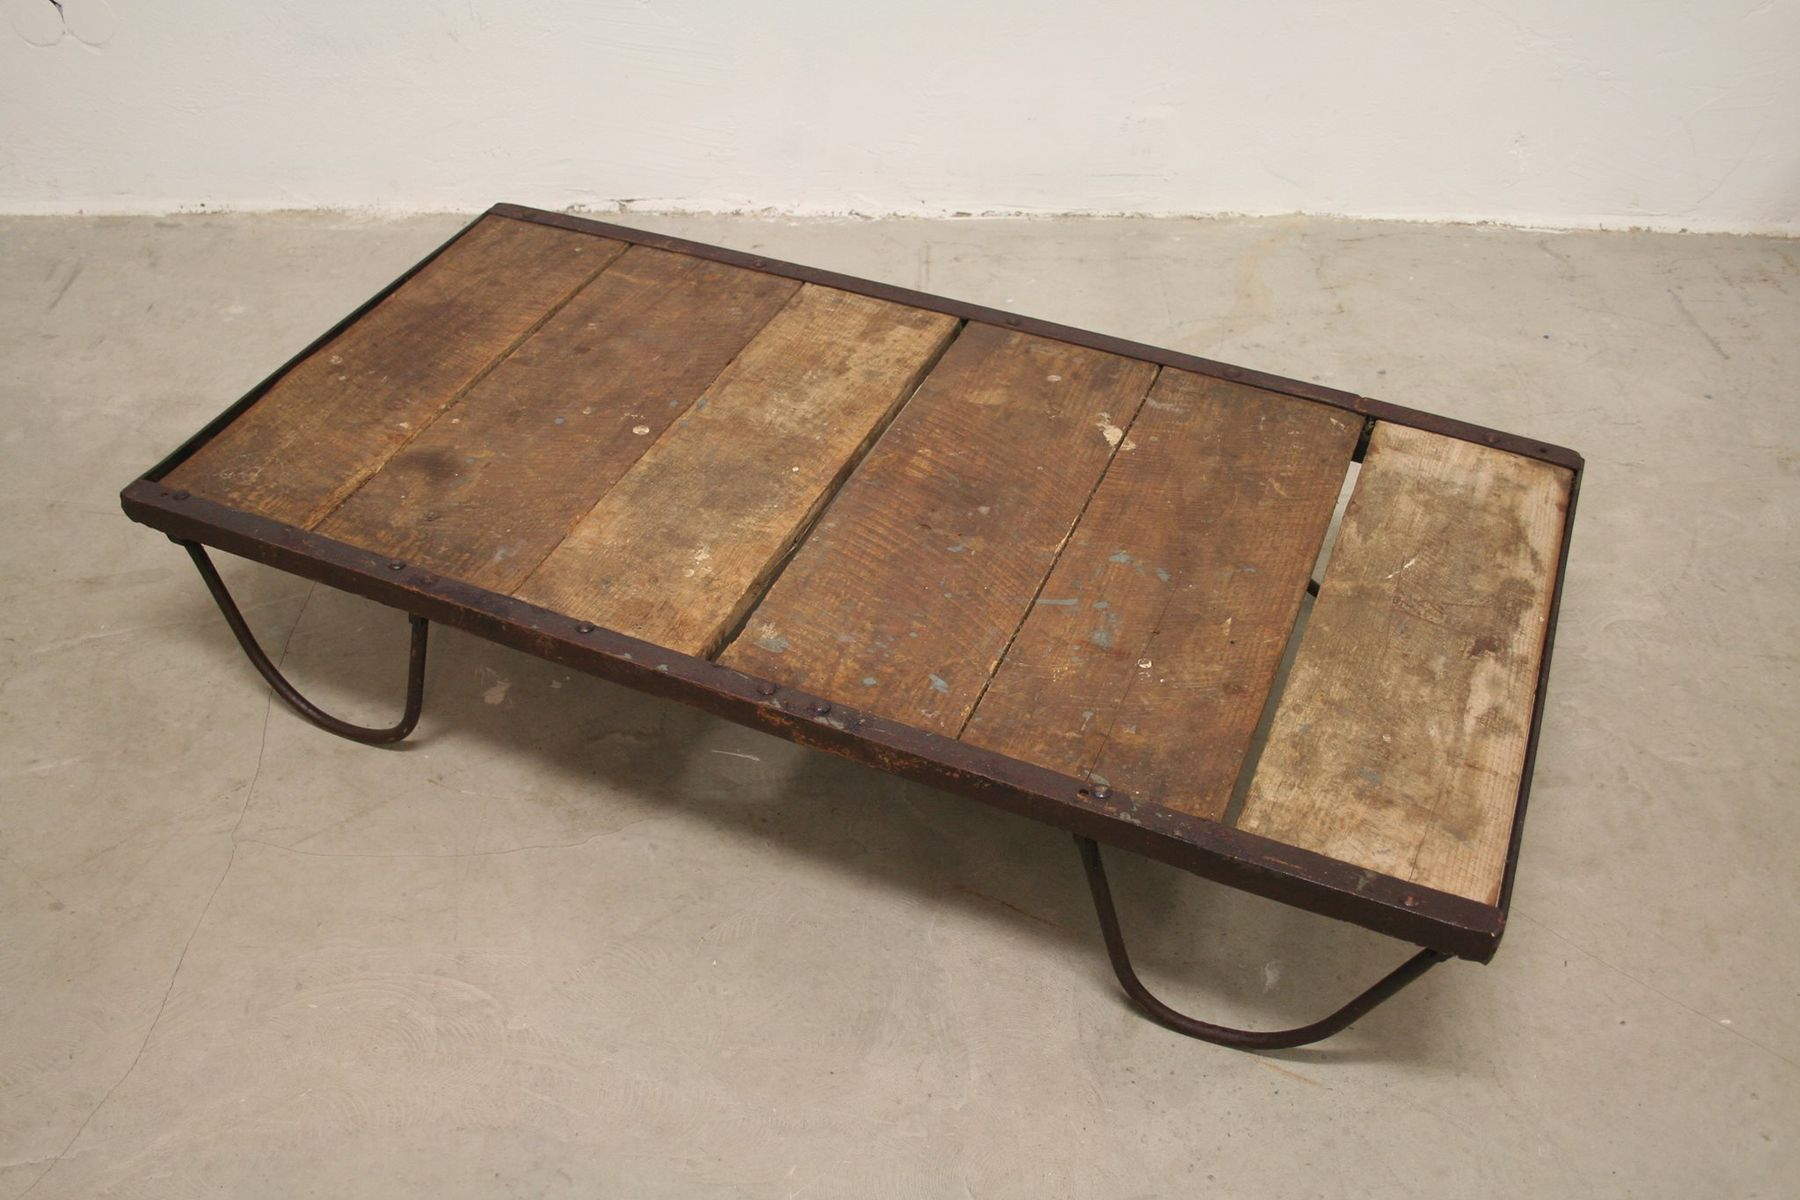 French Vintage Industrial Coffee Table 1930s for sale at Pamono